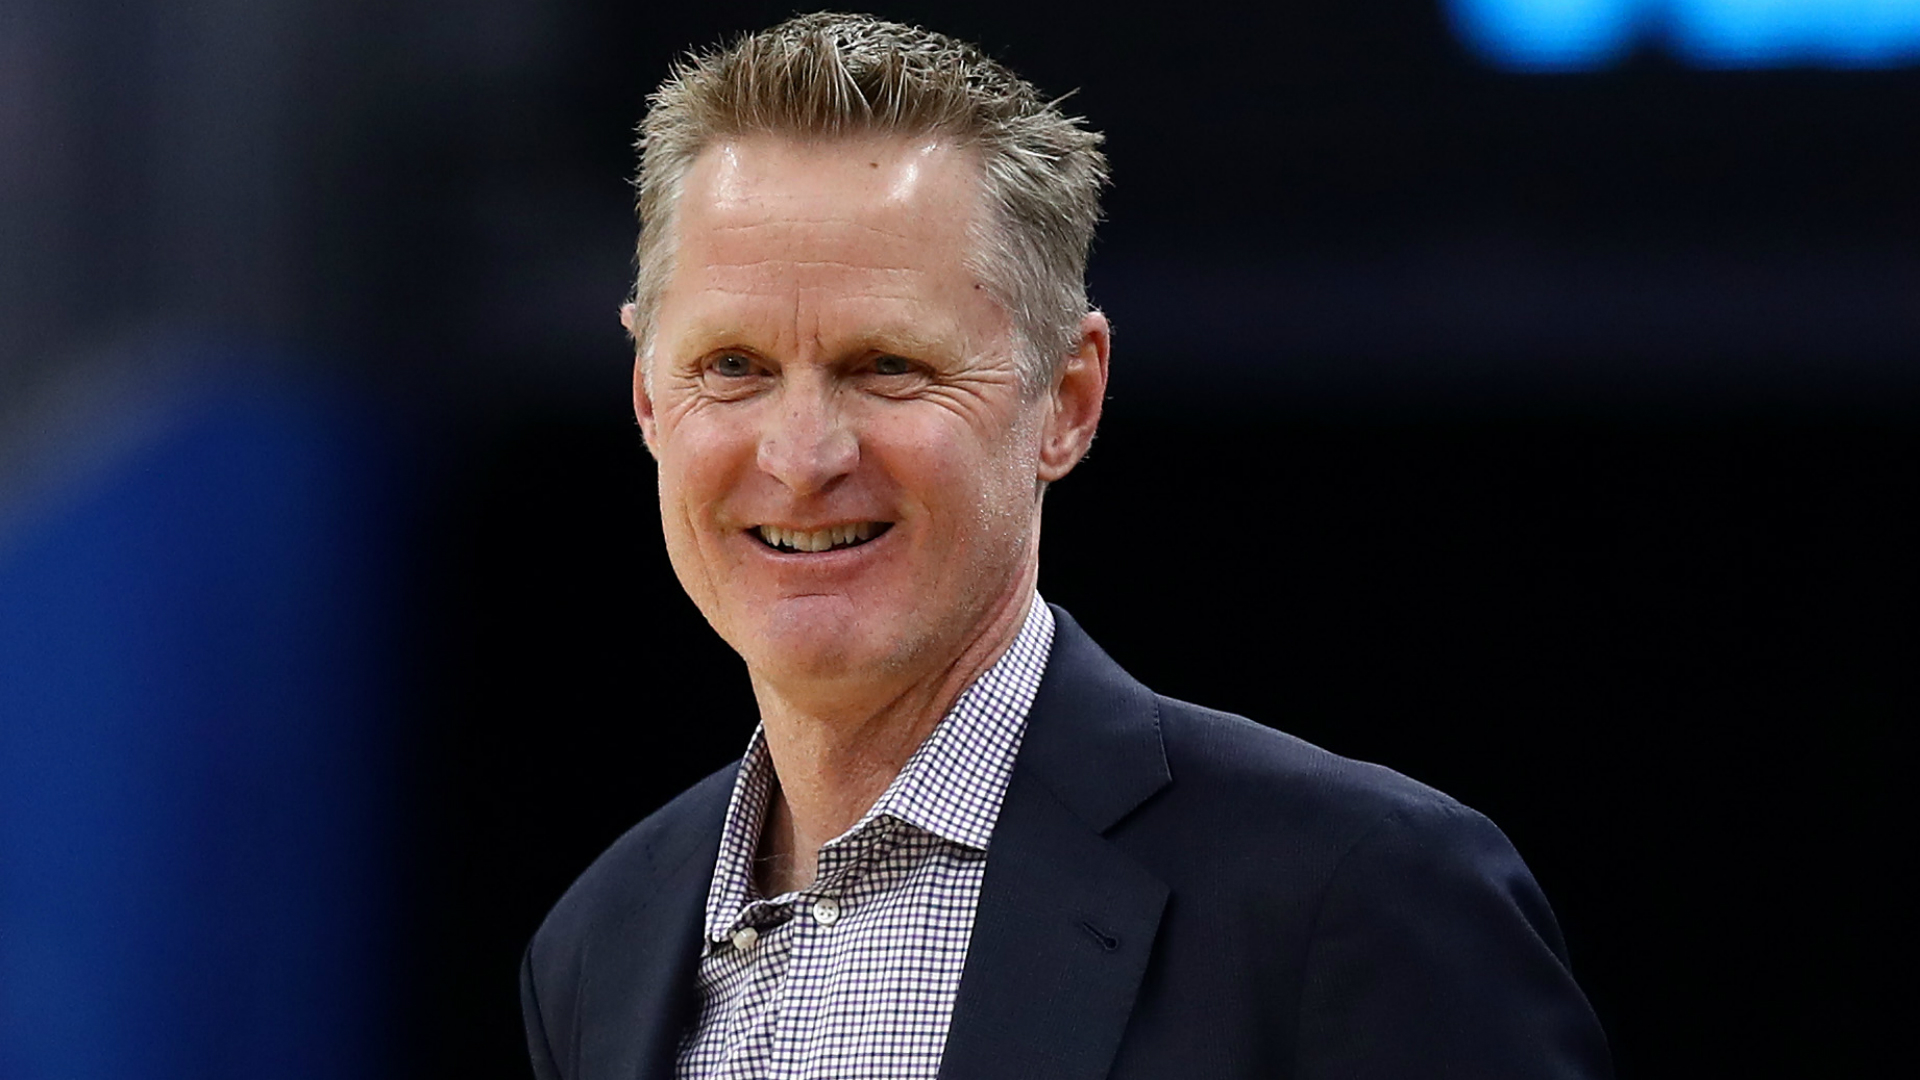 Warriors' Kerr reacts to Knicks sacking Fizdale: That would've been me three years ago